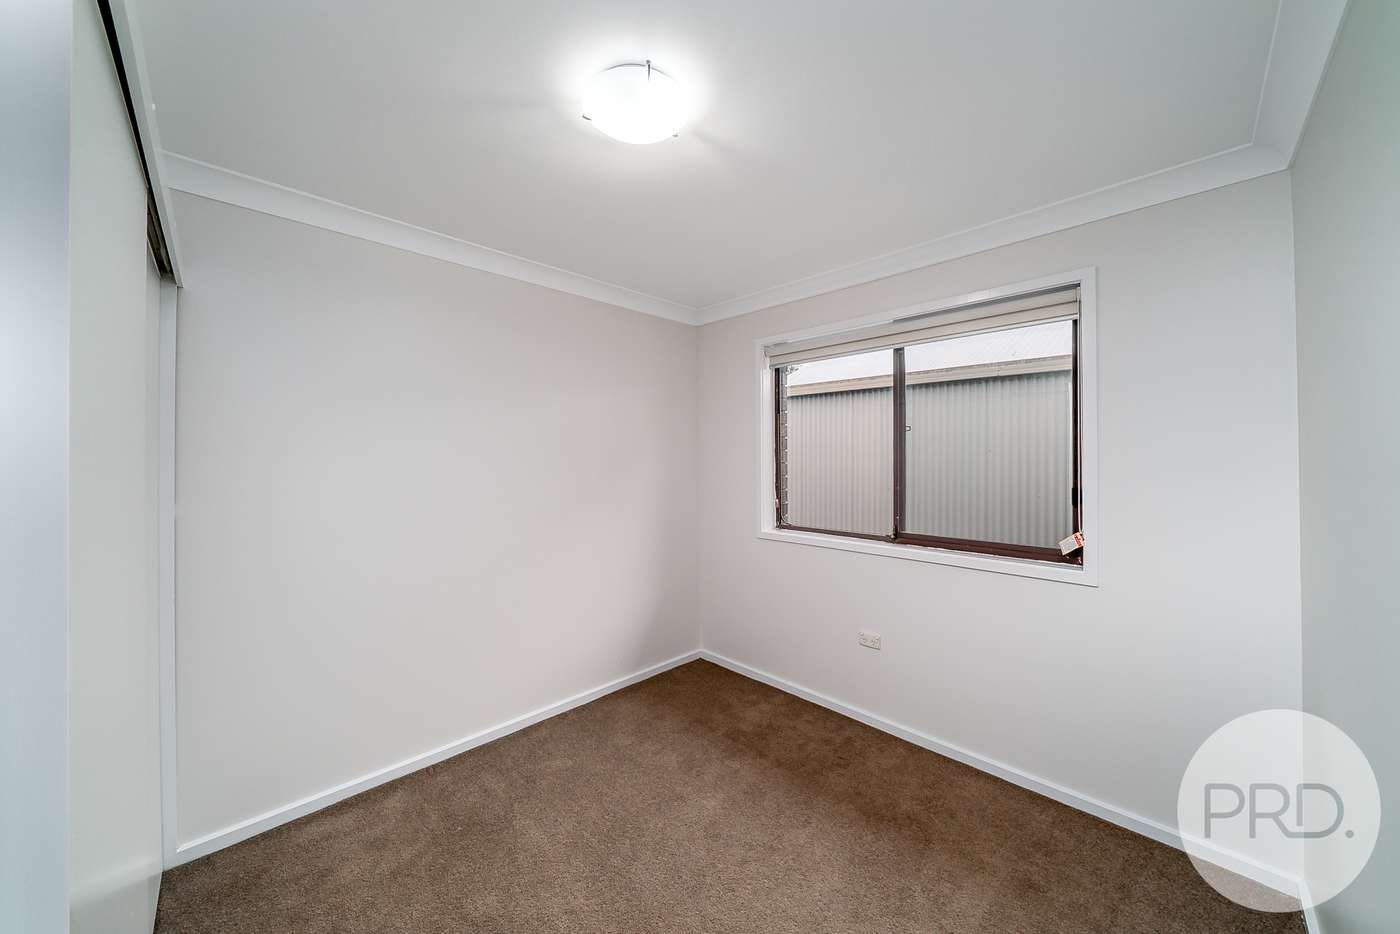 Sixth view of Homely house listing, 12 Vestey Street, Wagga Wagga NSW 2650